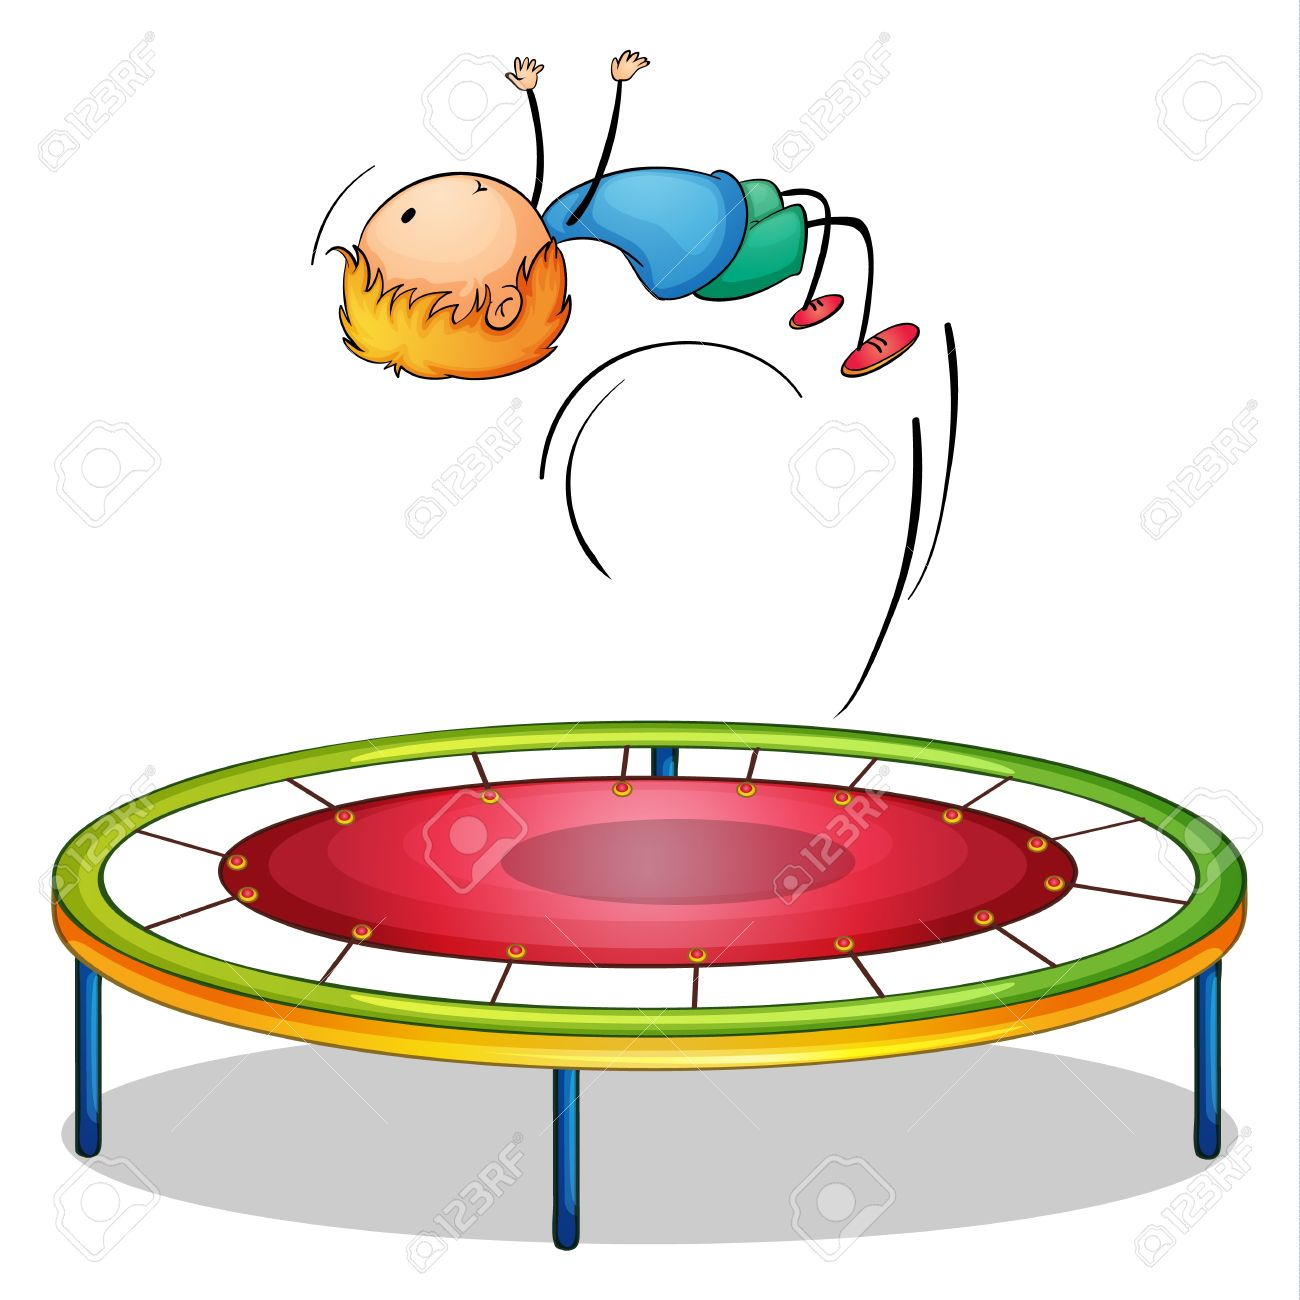 Bounce Man Stock Photos & Pictures. Royalty Free Bounce Man Images.